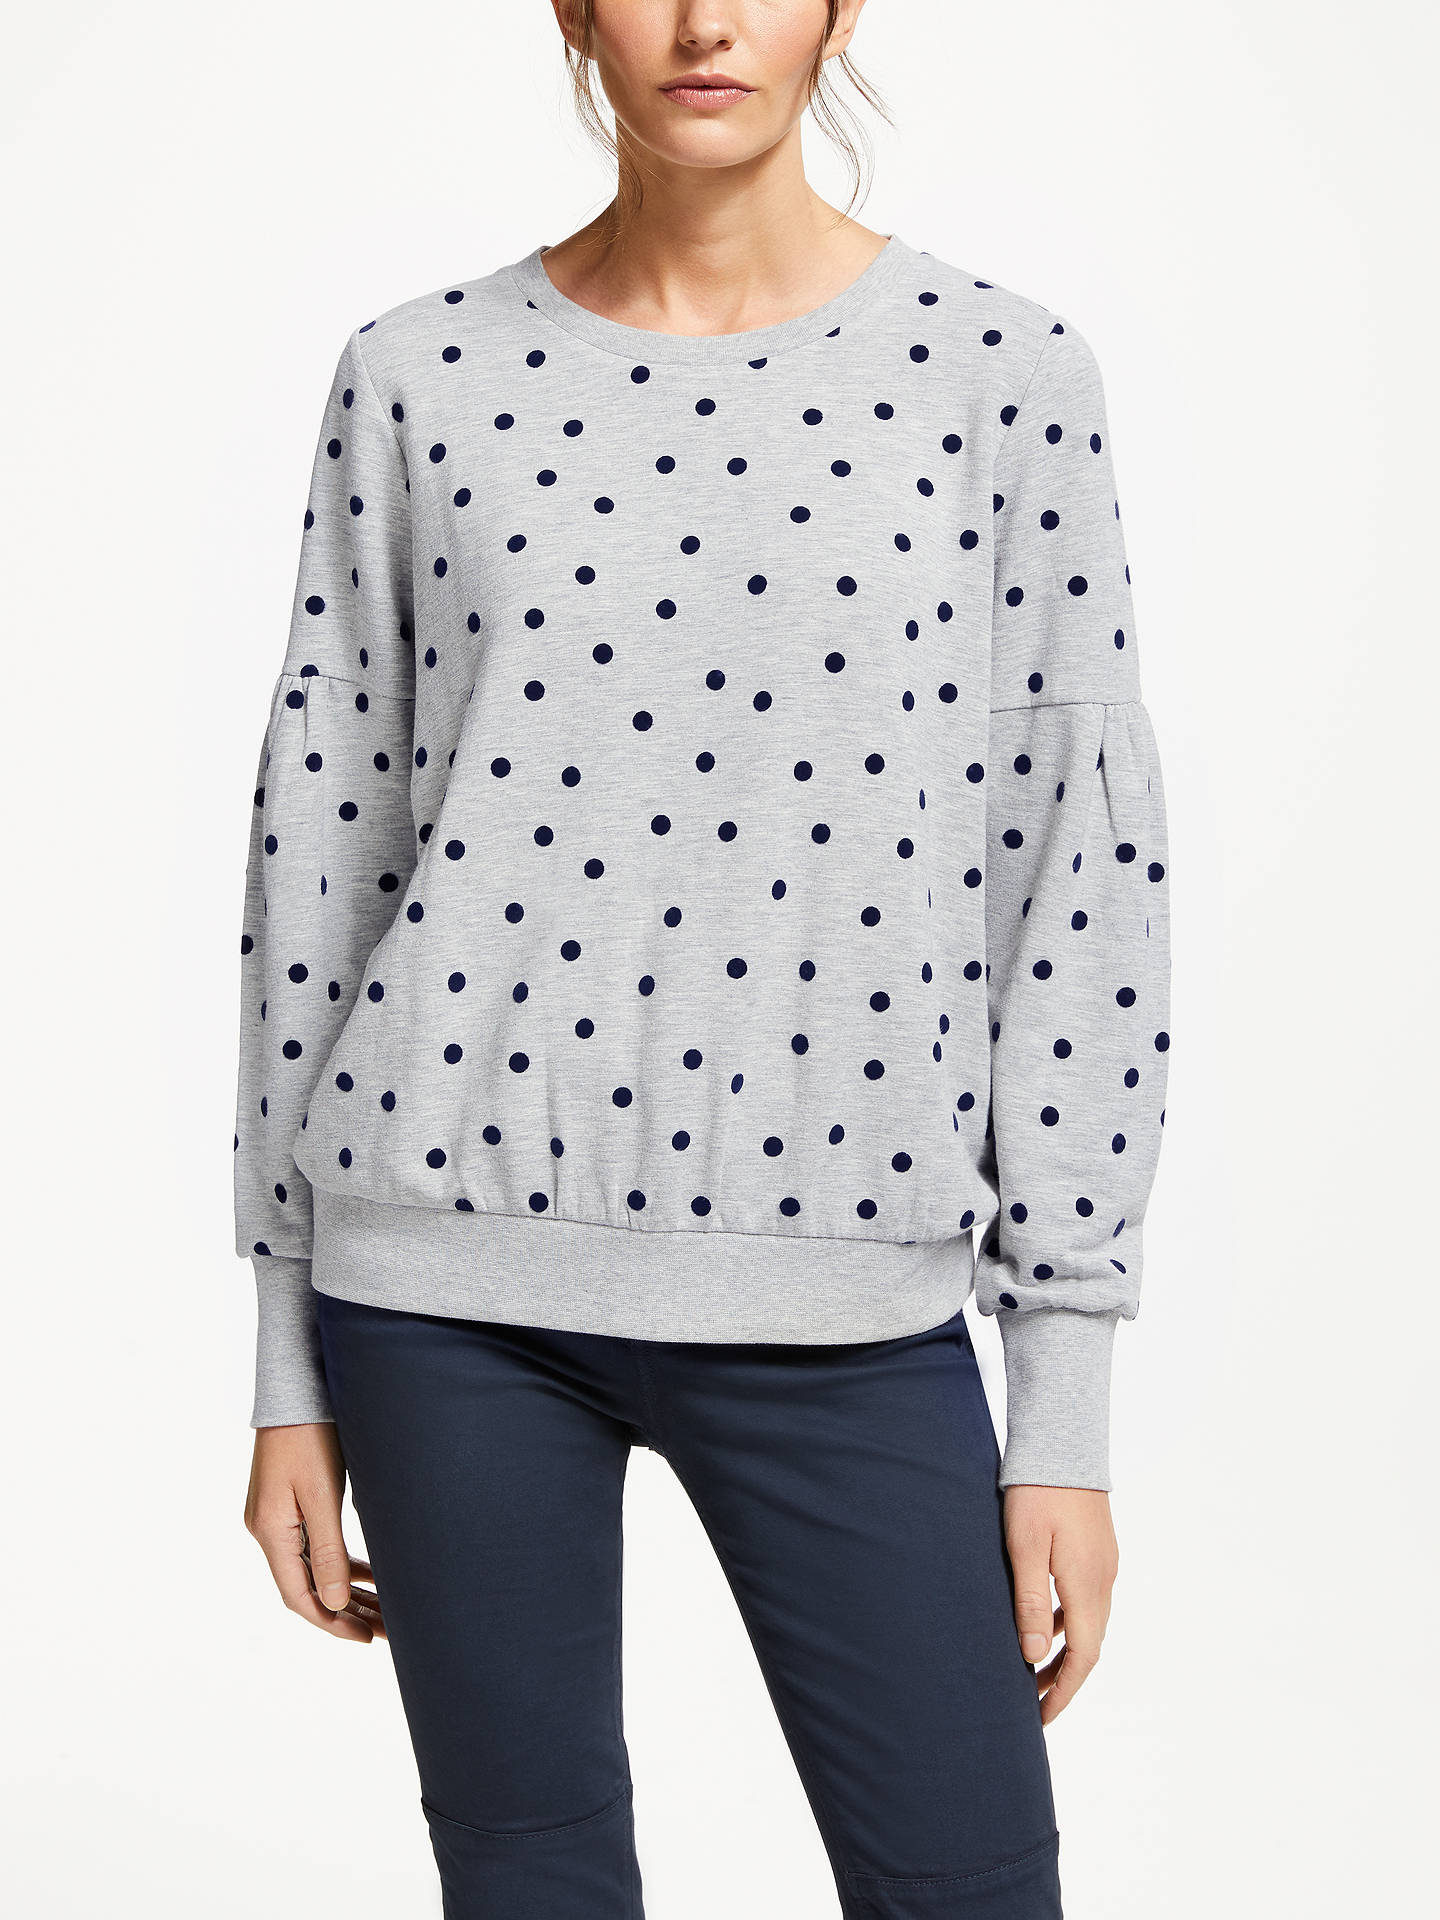 Buy Boden Renee Polka Dot Sweatshirt, Grey Marl Spot, XS Online at johnlewis.com